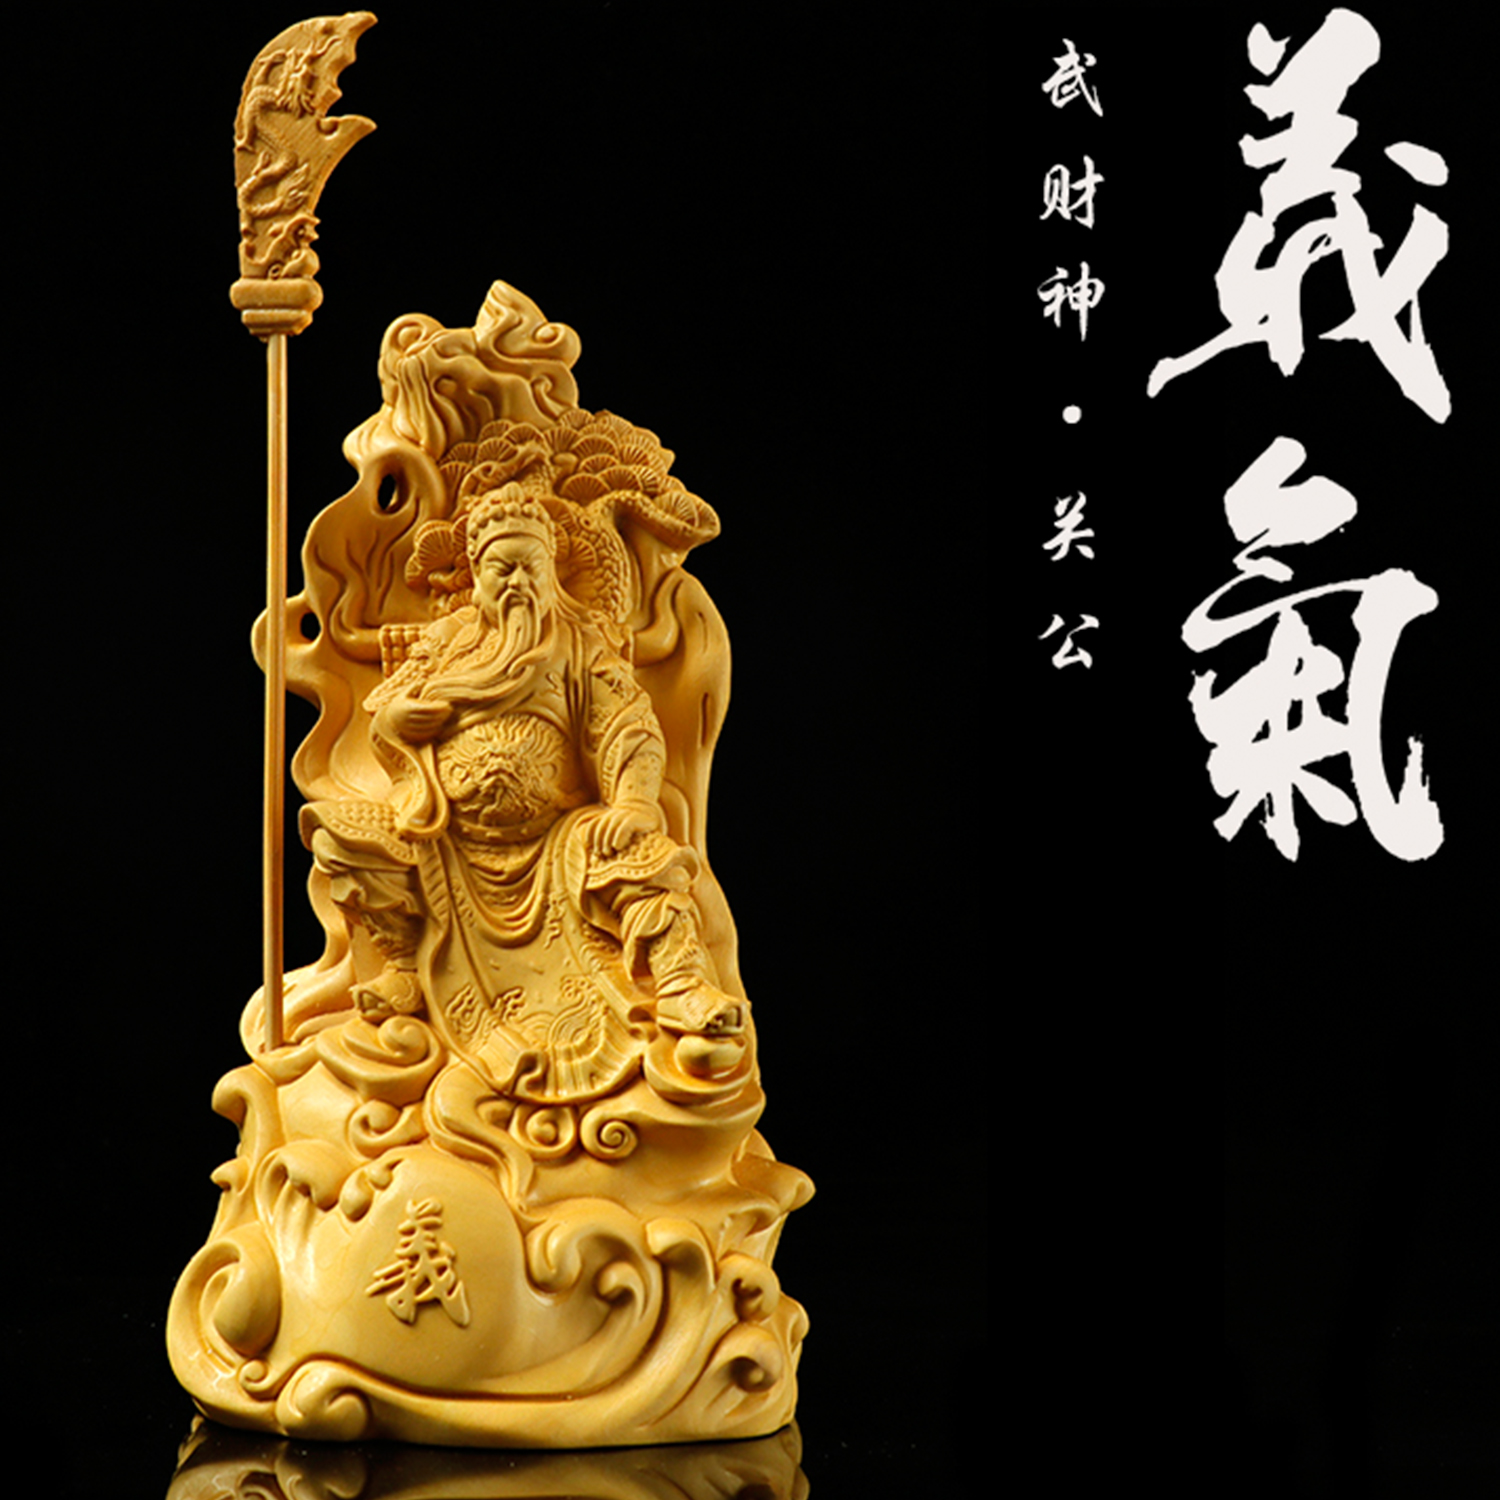 Guan Yu Gong Boxwood Wood Carving Statue Warrior God Handcarved Sculpture Amulet